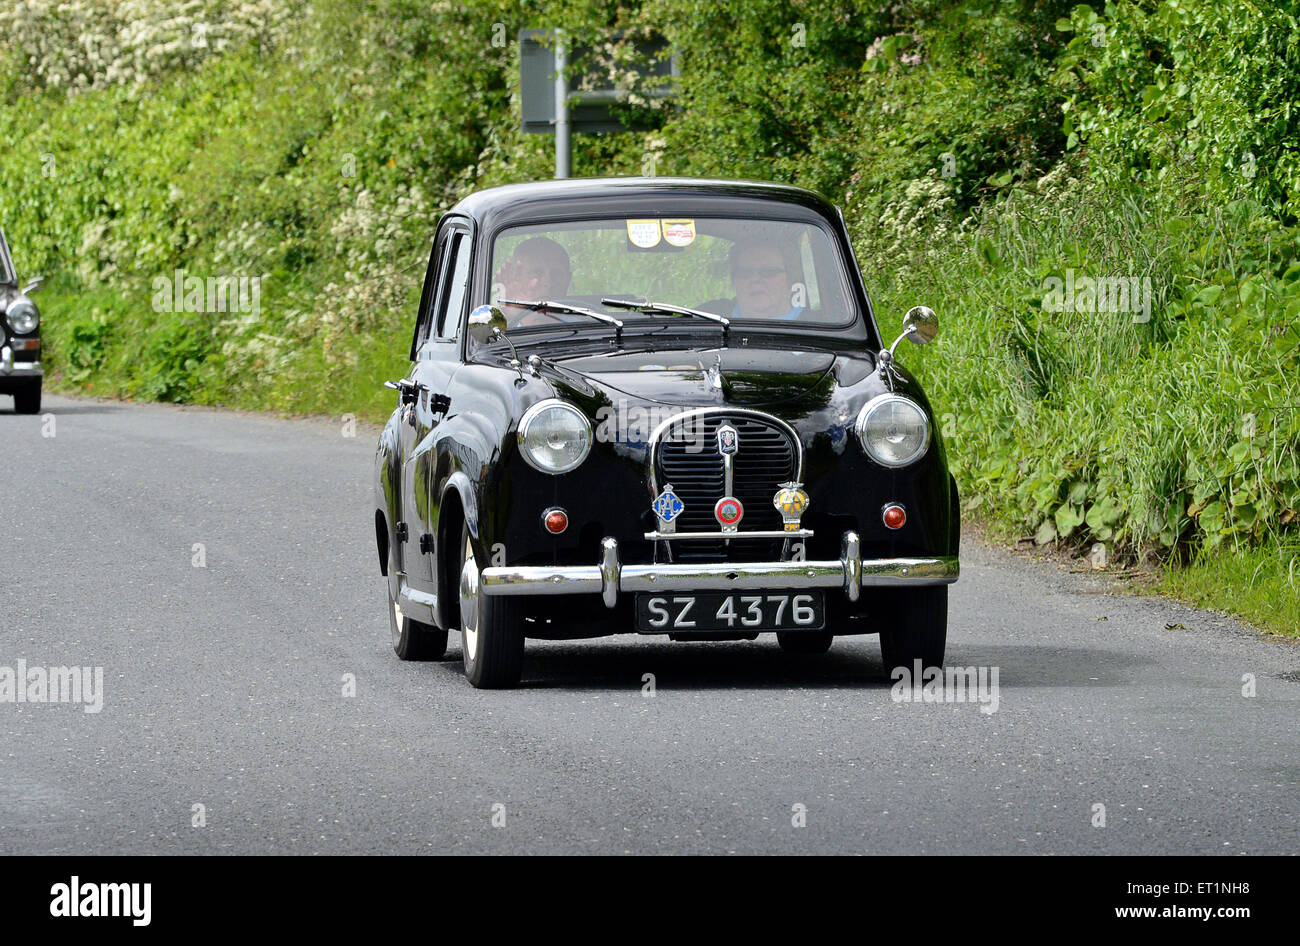 austin a35 black classic small british saloon car 1957 4 door on stock photo royalty free. Black Bedroom Furniture Sets. Home Design Ideas